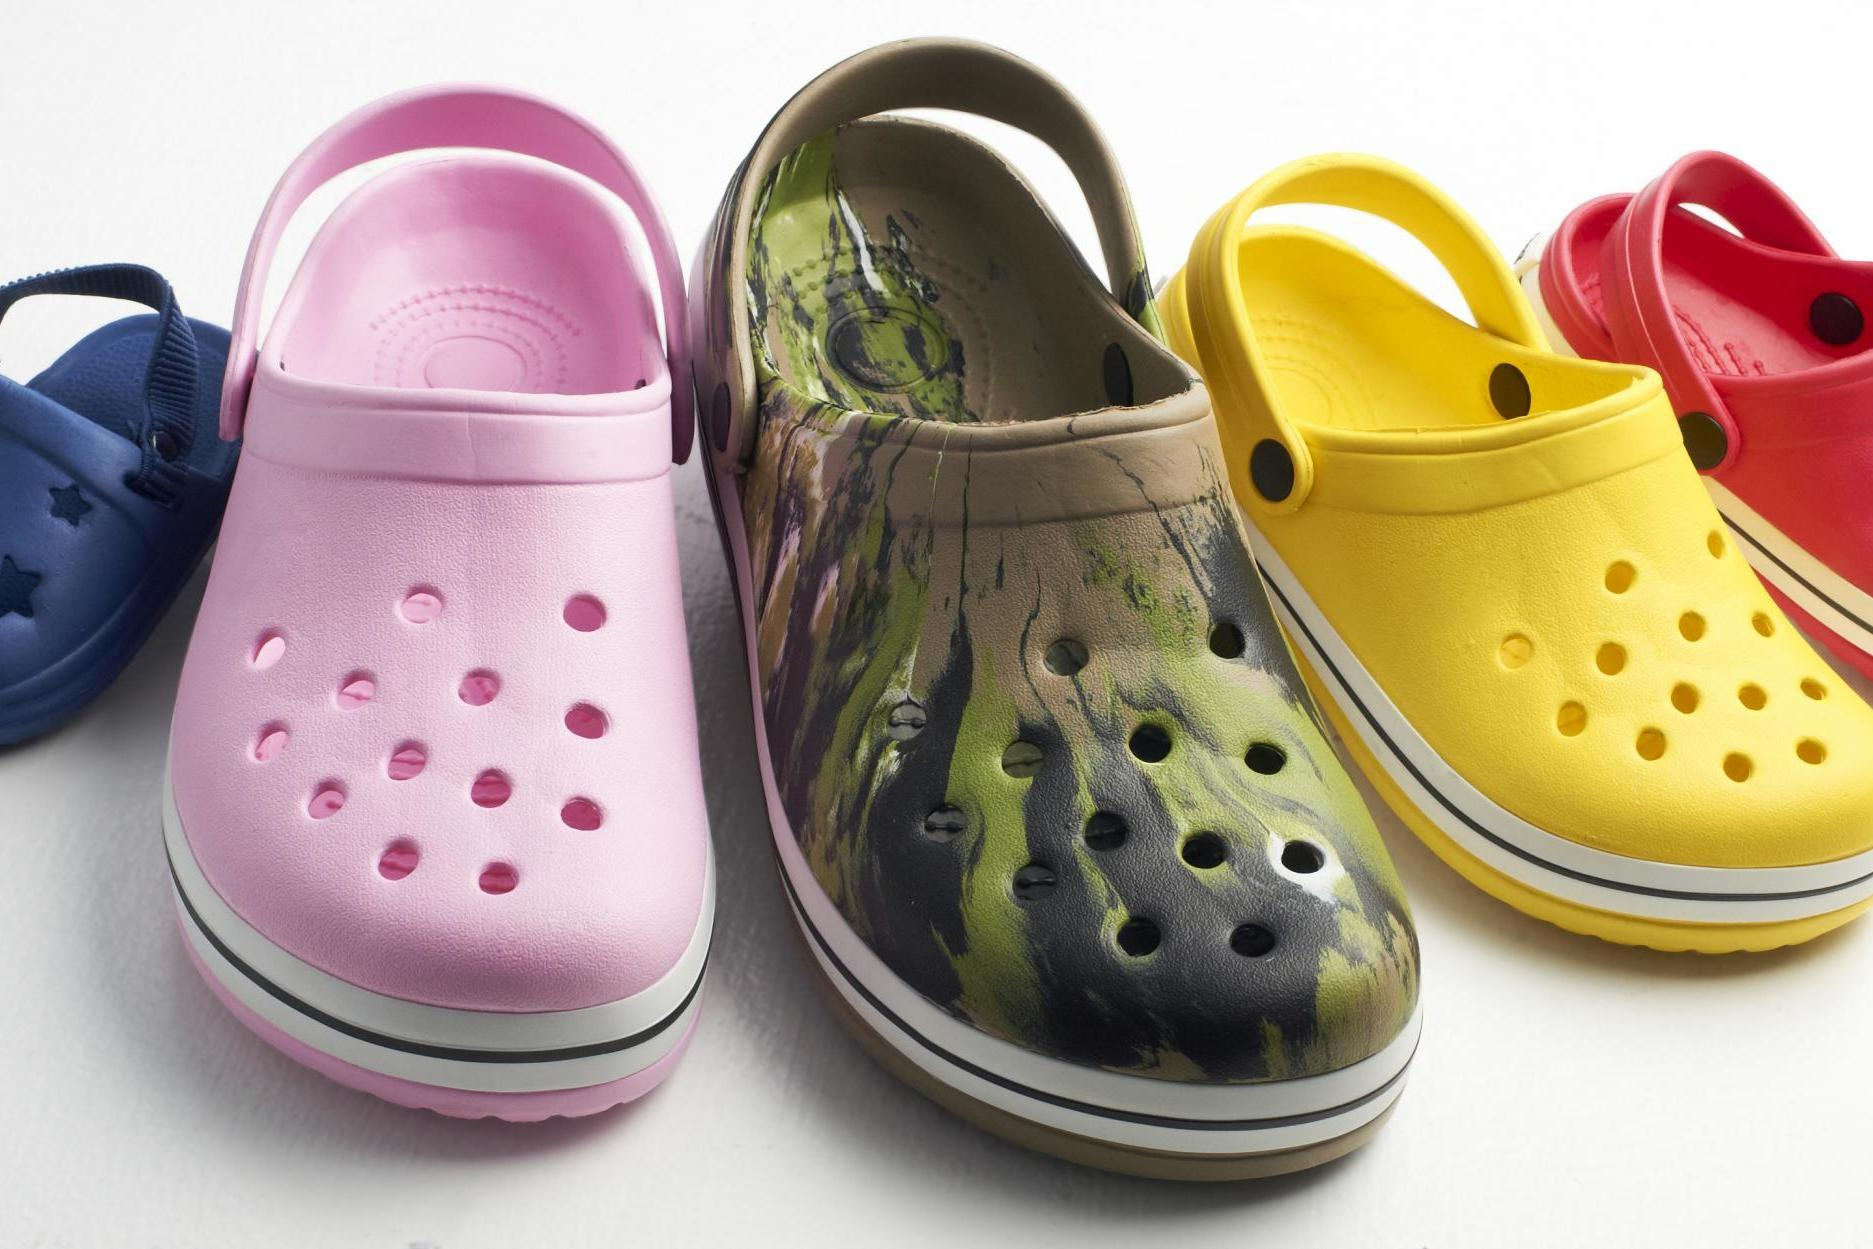 High-heeled Crocs are now a thing - has fashion finally gone too far?